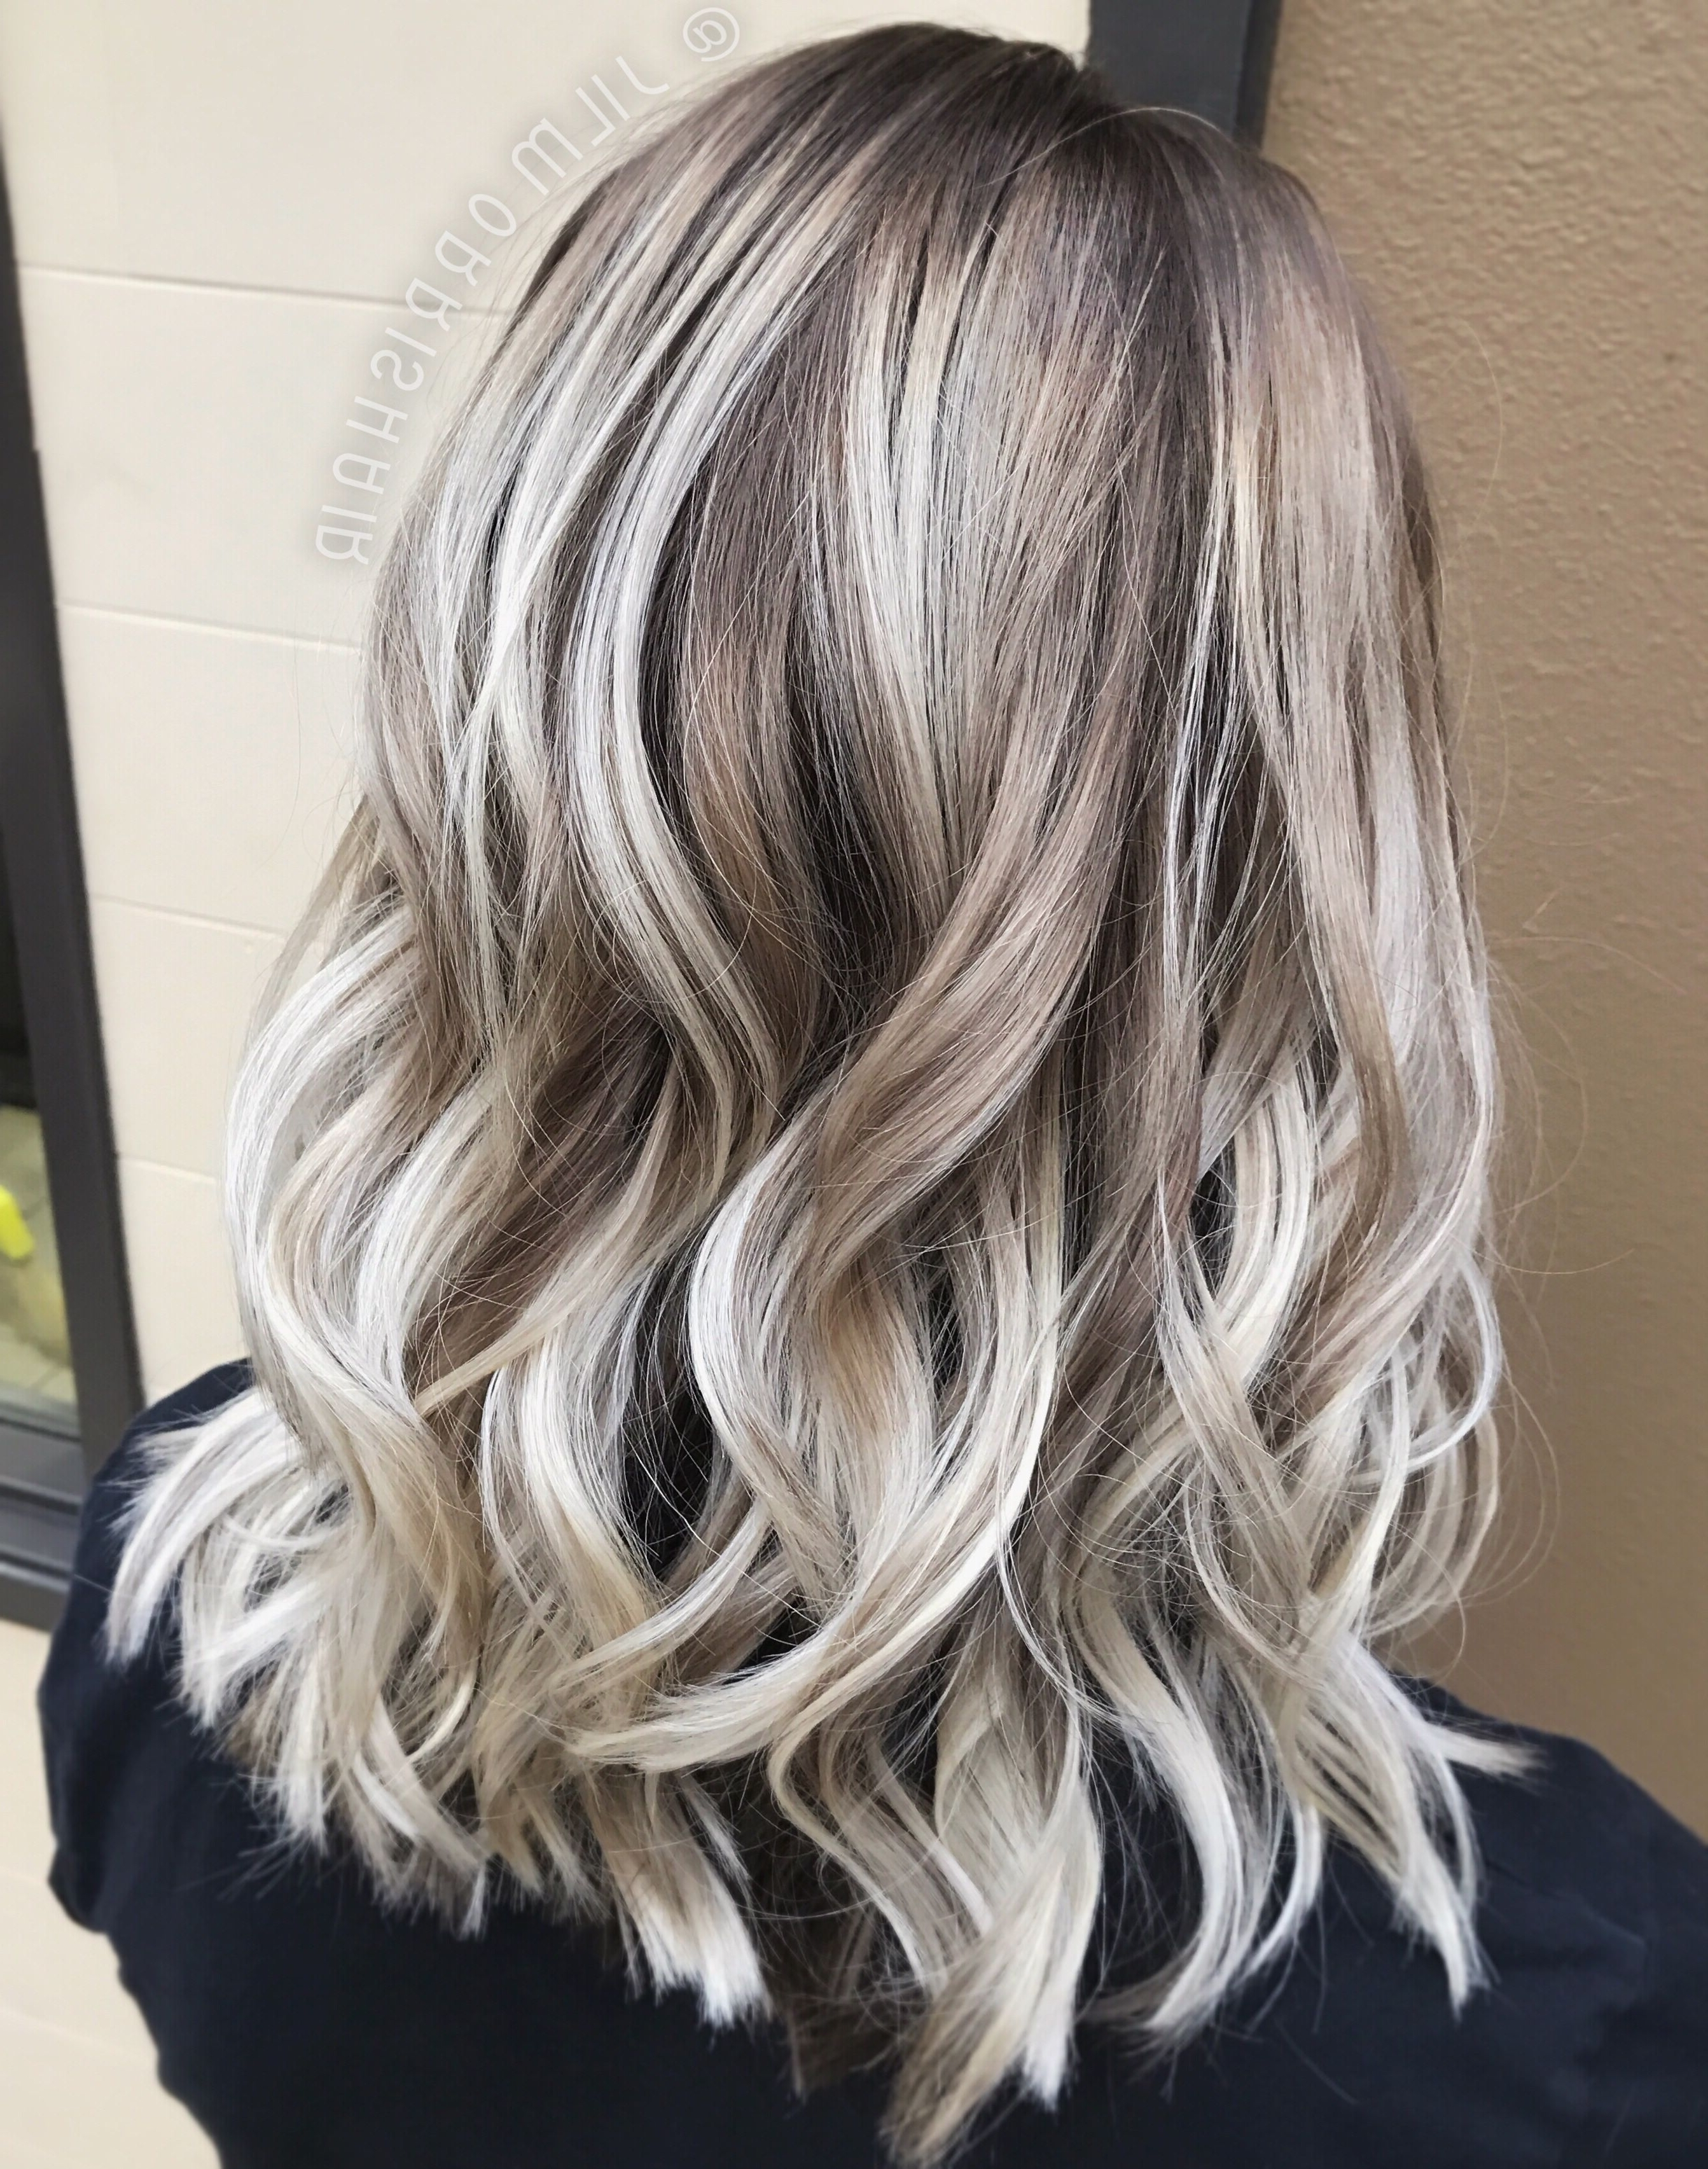 White Ash Blonde Balayage, Shadow Root, Curls In A Textured Lob Throughout Well Known Dark Brown Hair Hairstyles With Silver Blonde Highlights (View 20 of 20)